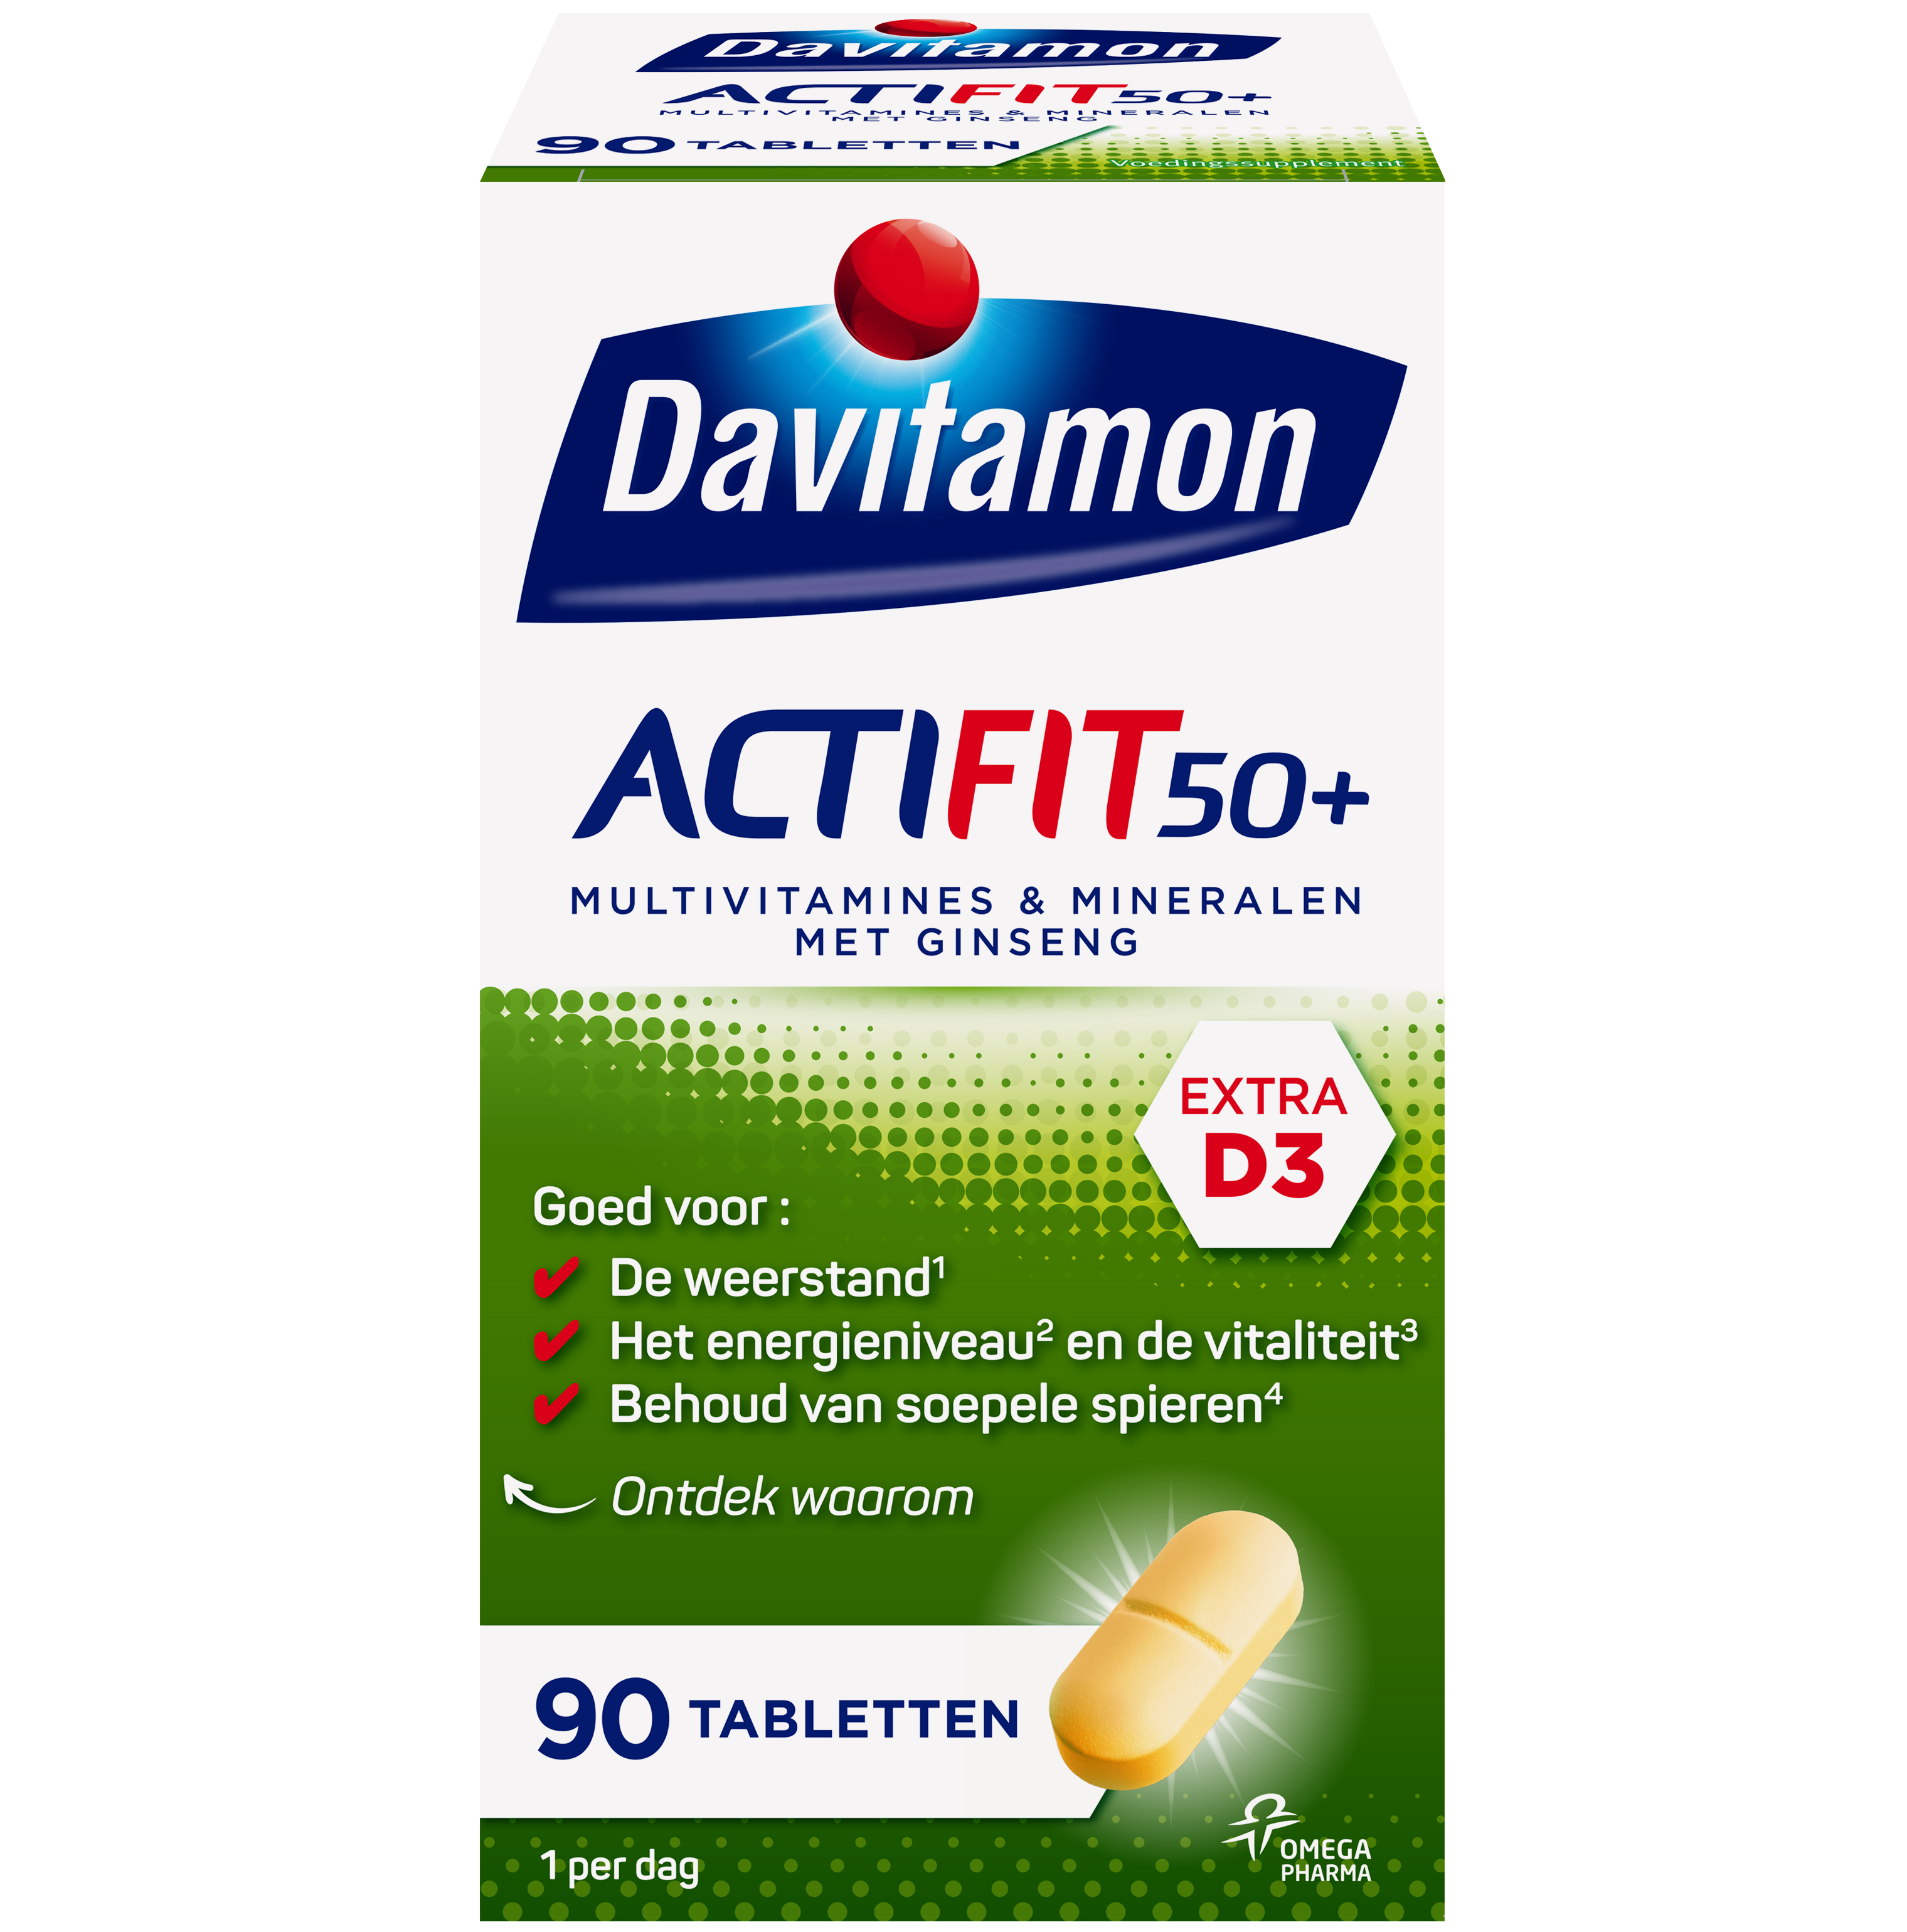 Davitamon Actifit 50+ Tabletten Verpakking